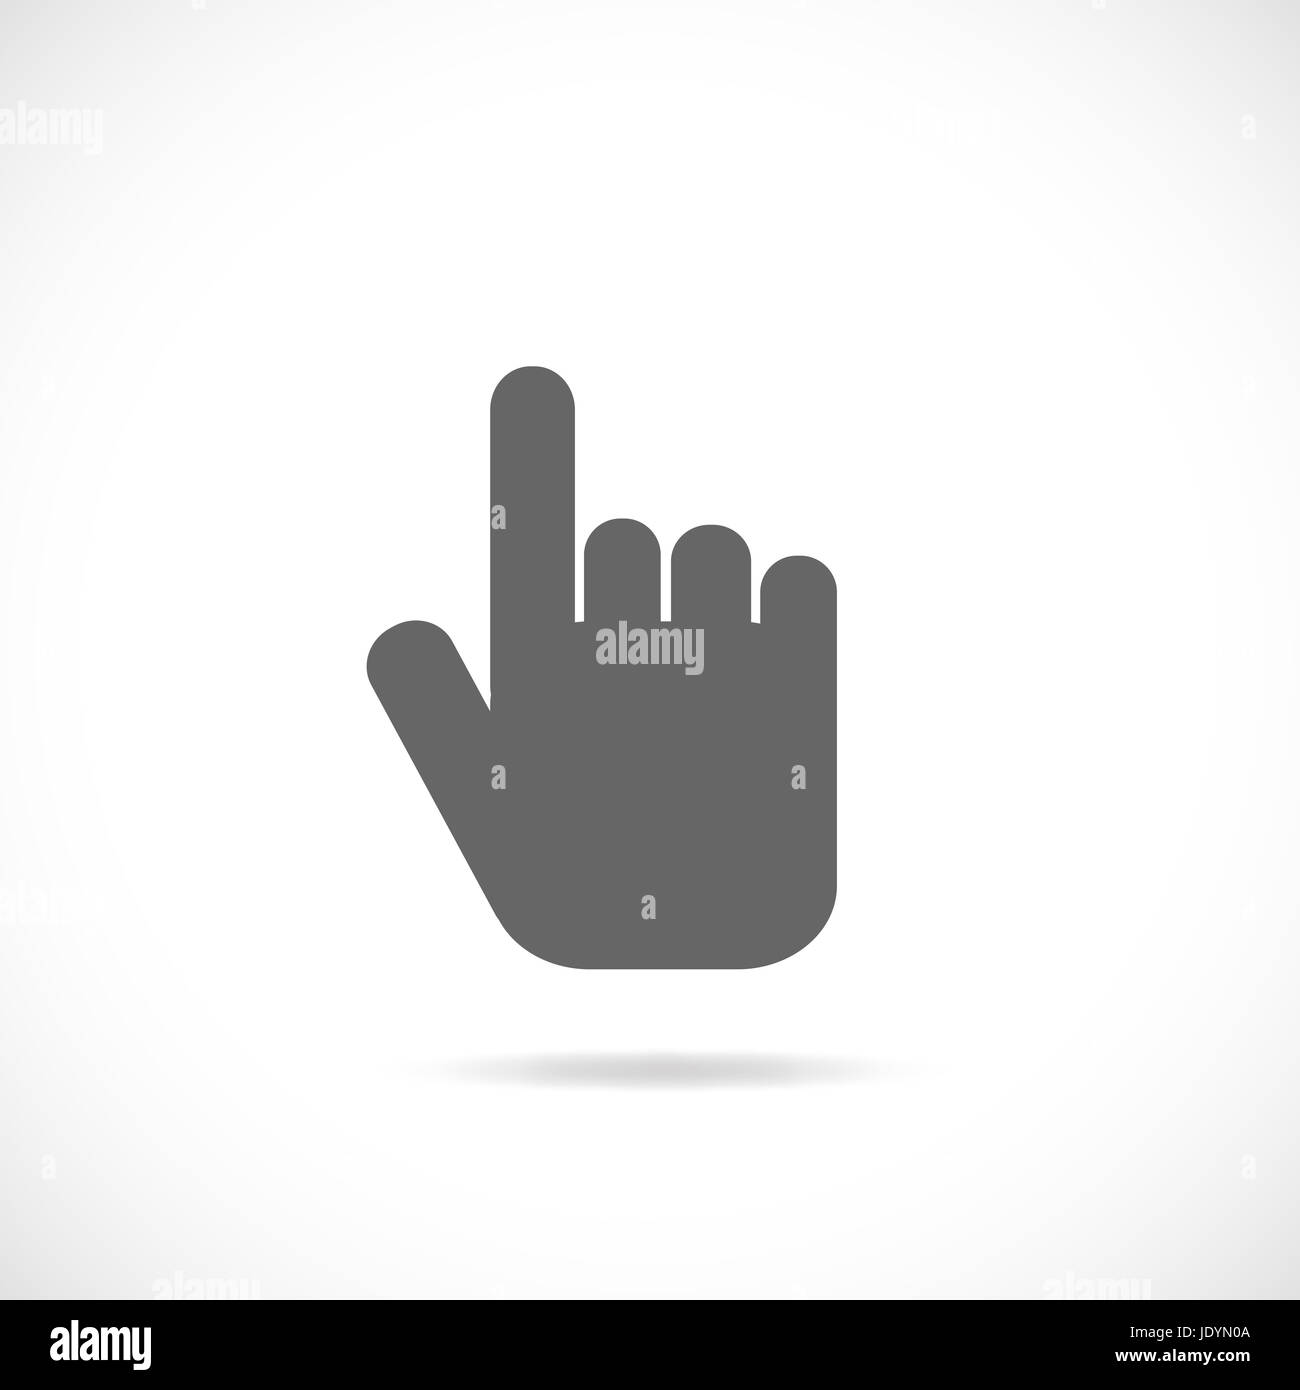 Pointing Hand Vector Stockfotos & Pointing Hand Vector Bilder - Alamy